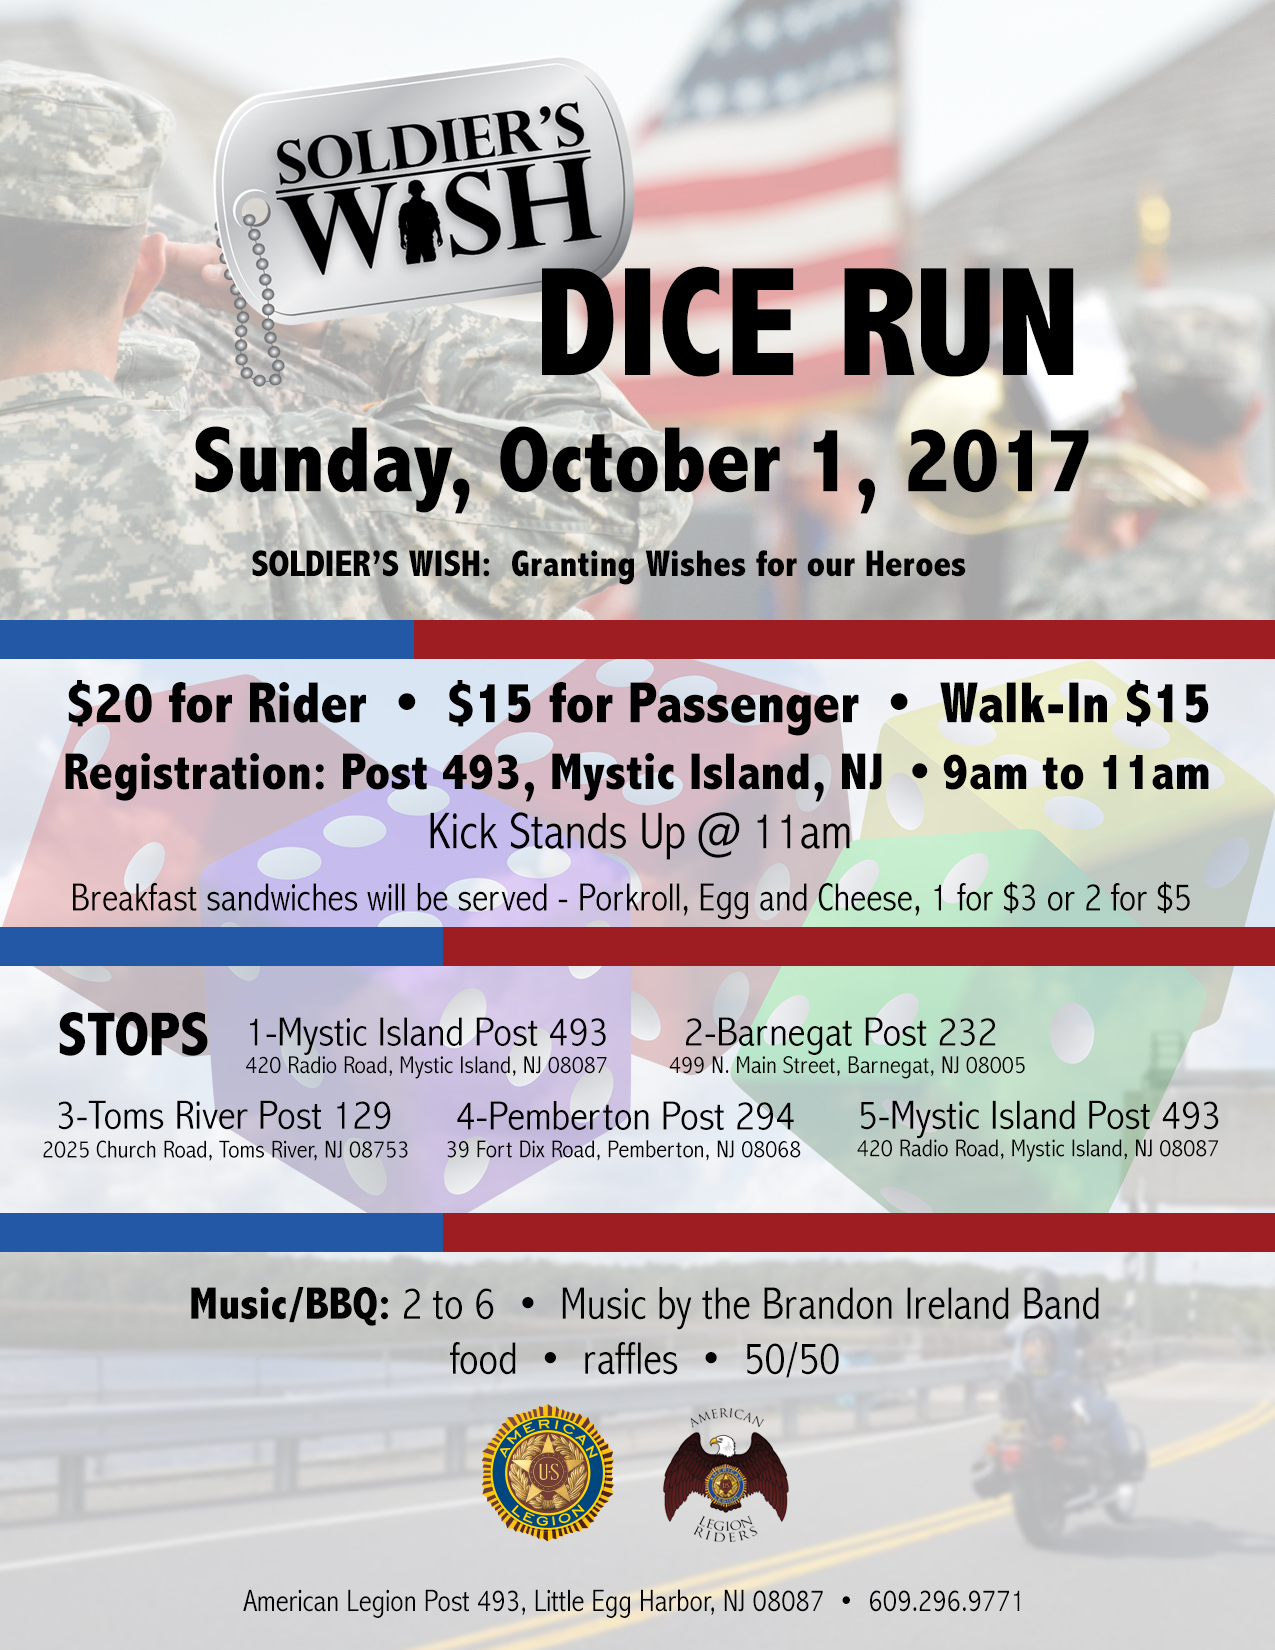 Soldier's Wish Dice Run